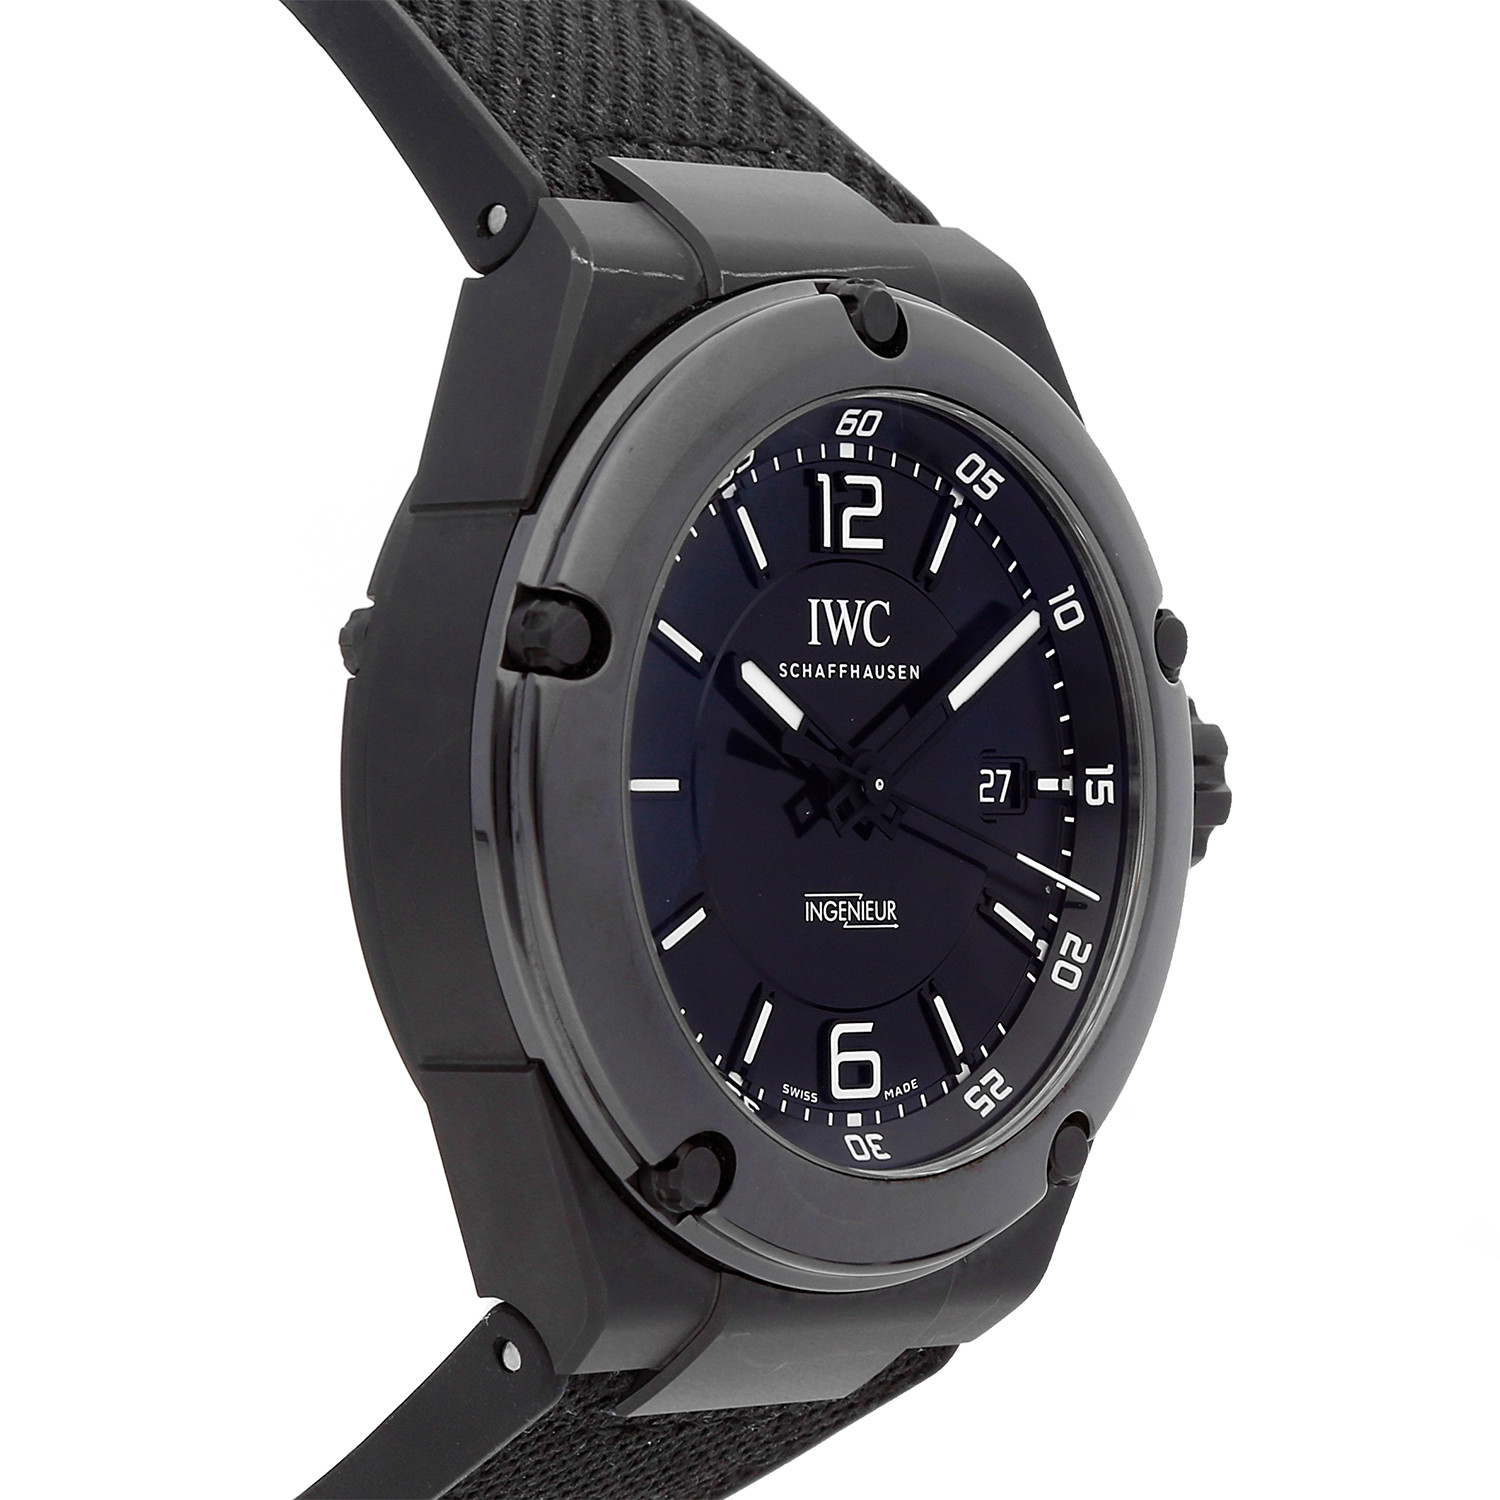 iwc ingenieur amg automatic iw3225 03 pre owned. Black Bedroom Furniture Sets. Home Design Ideas